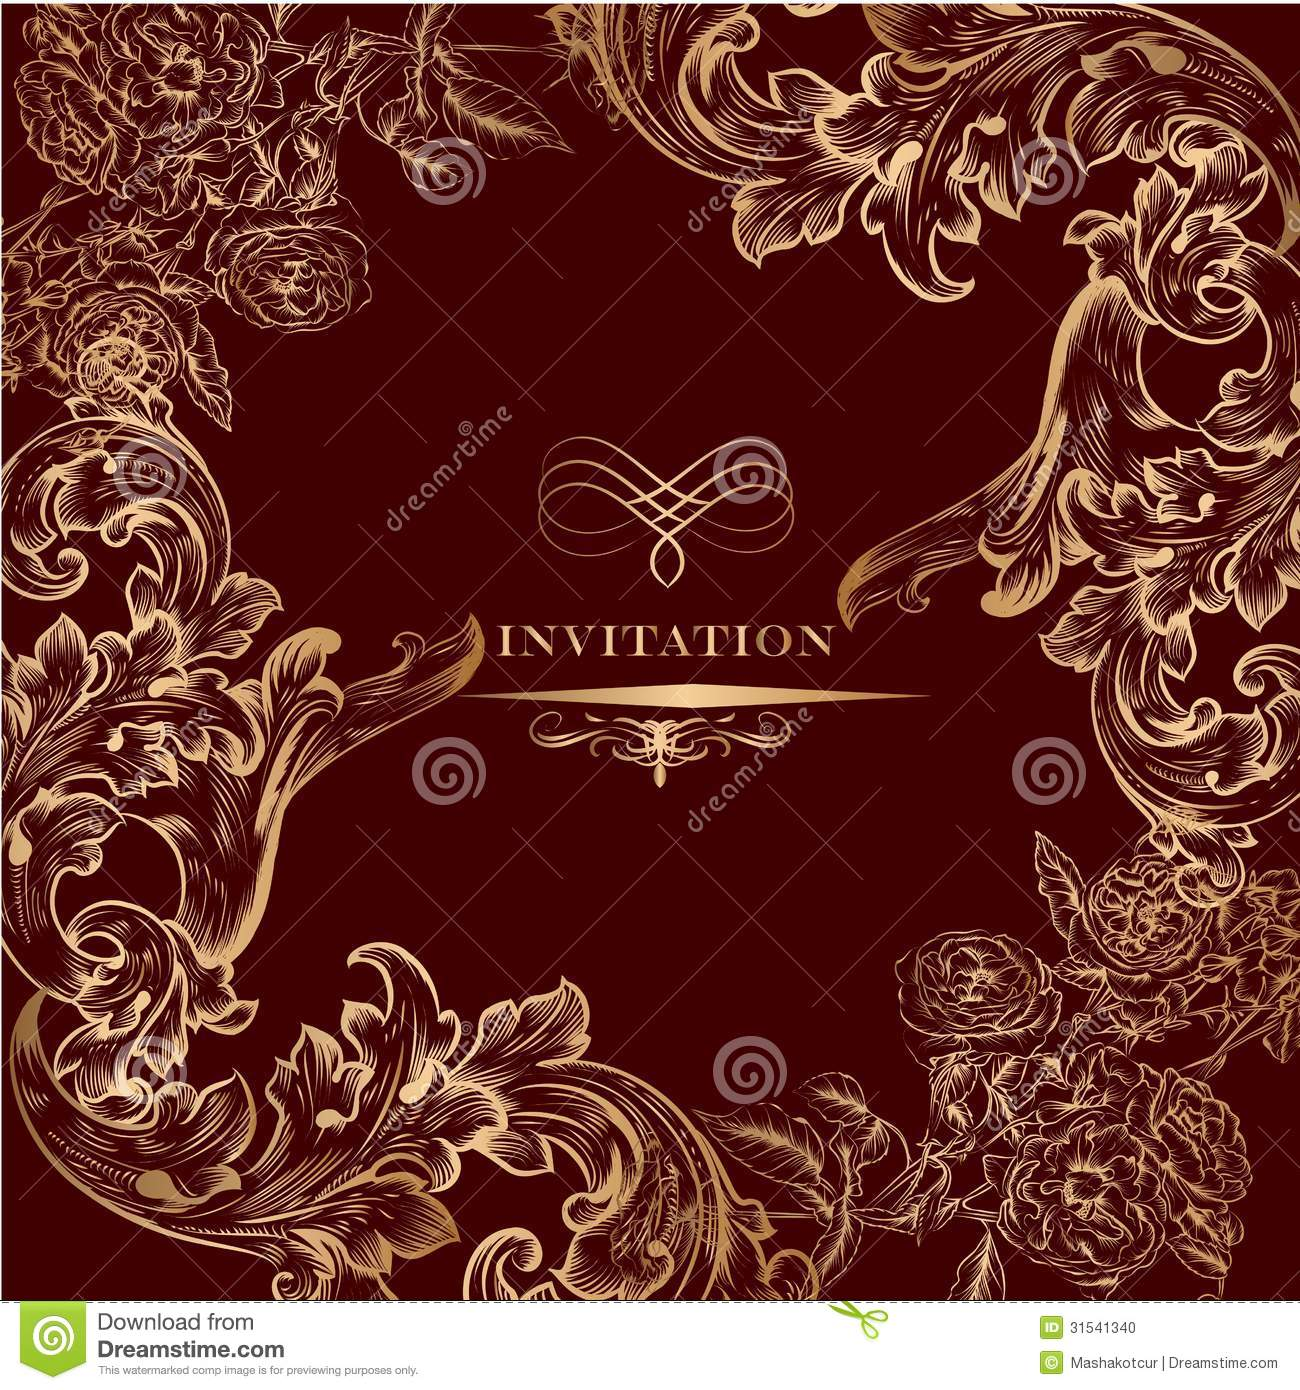 Image Result For Wedding Invitation Texture